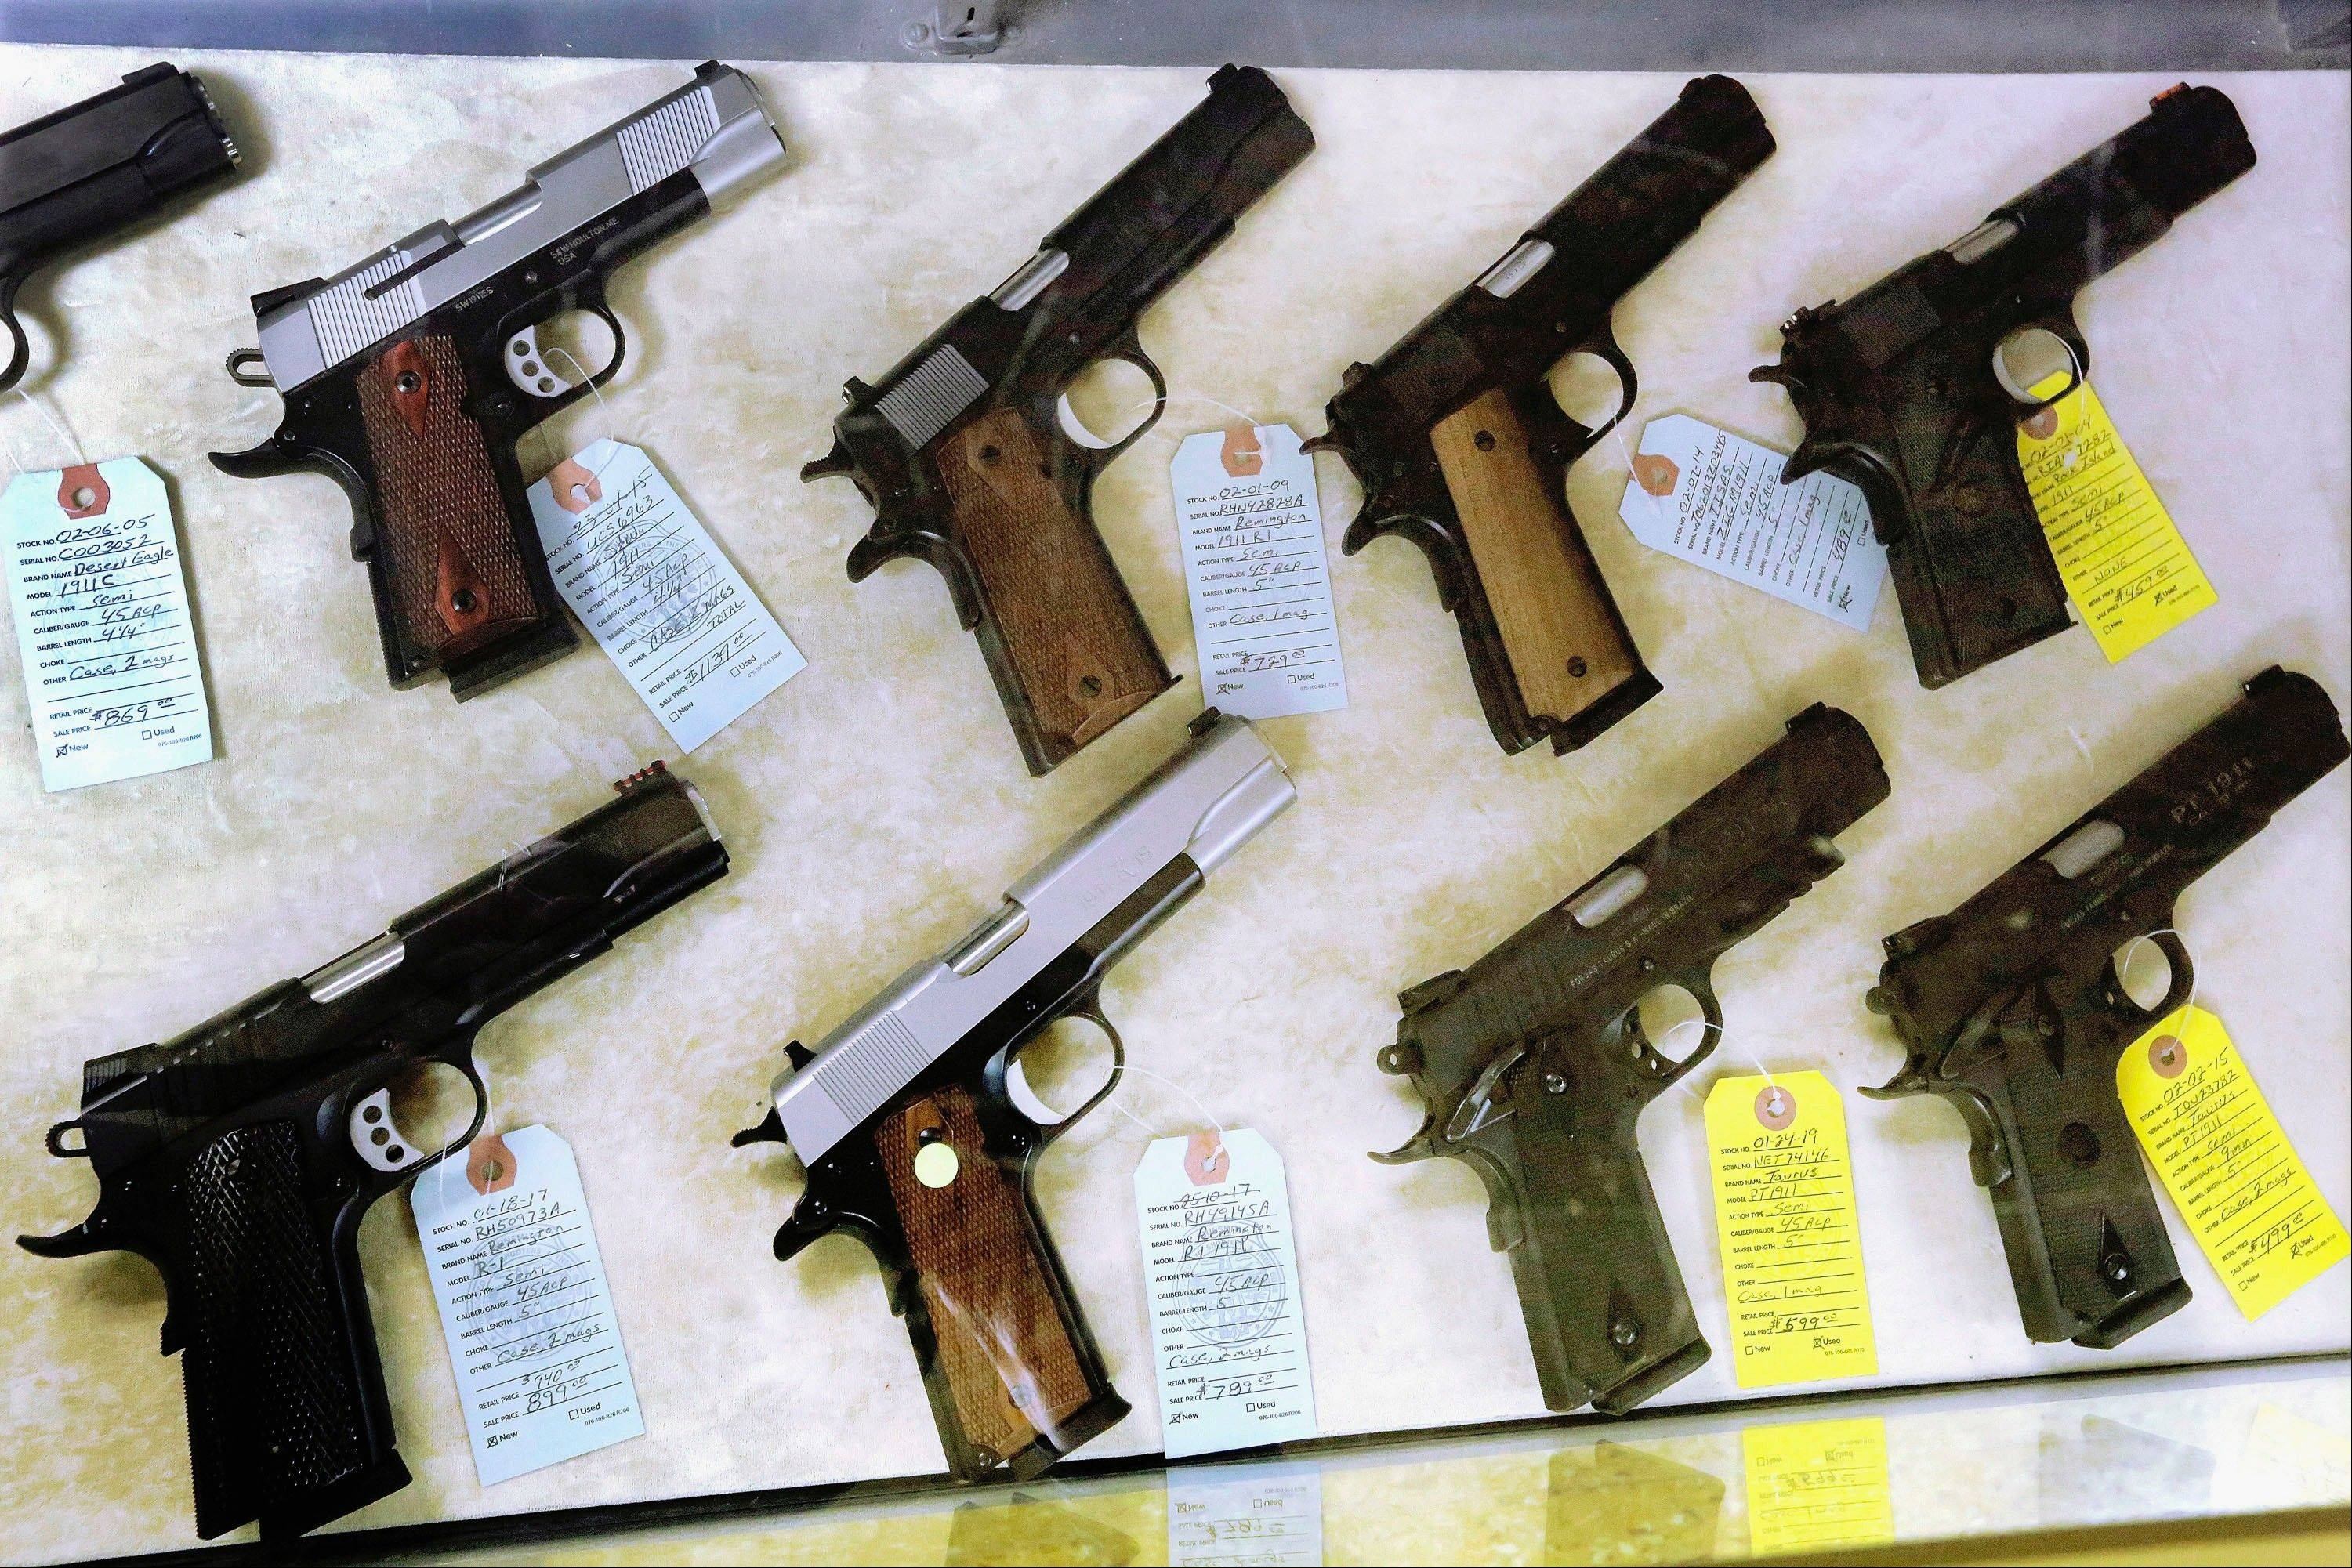 Concealed carry applications to open Sunday